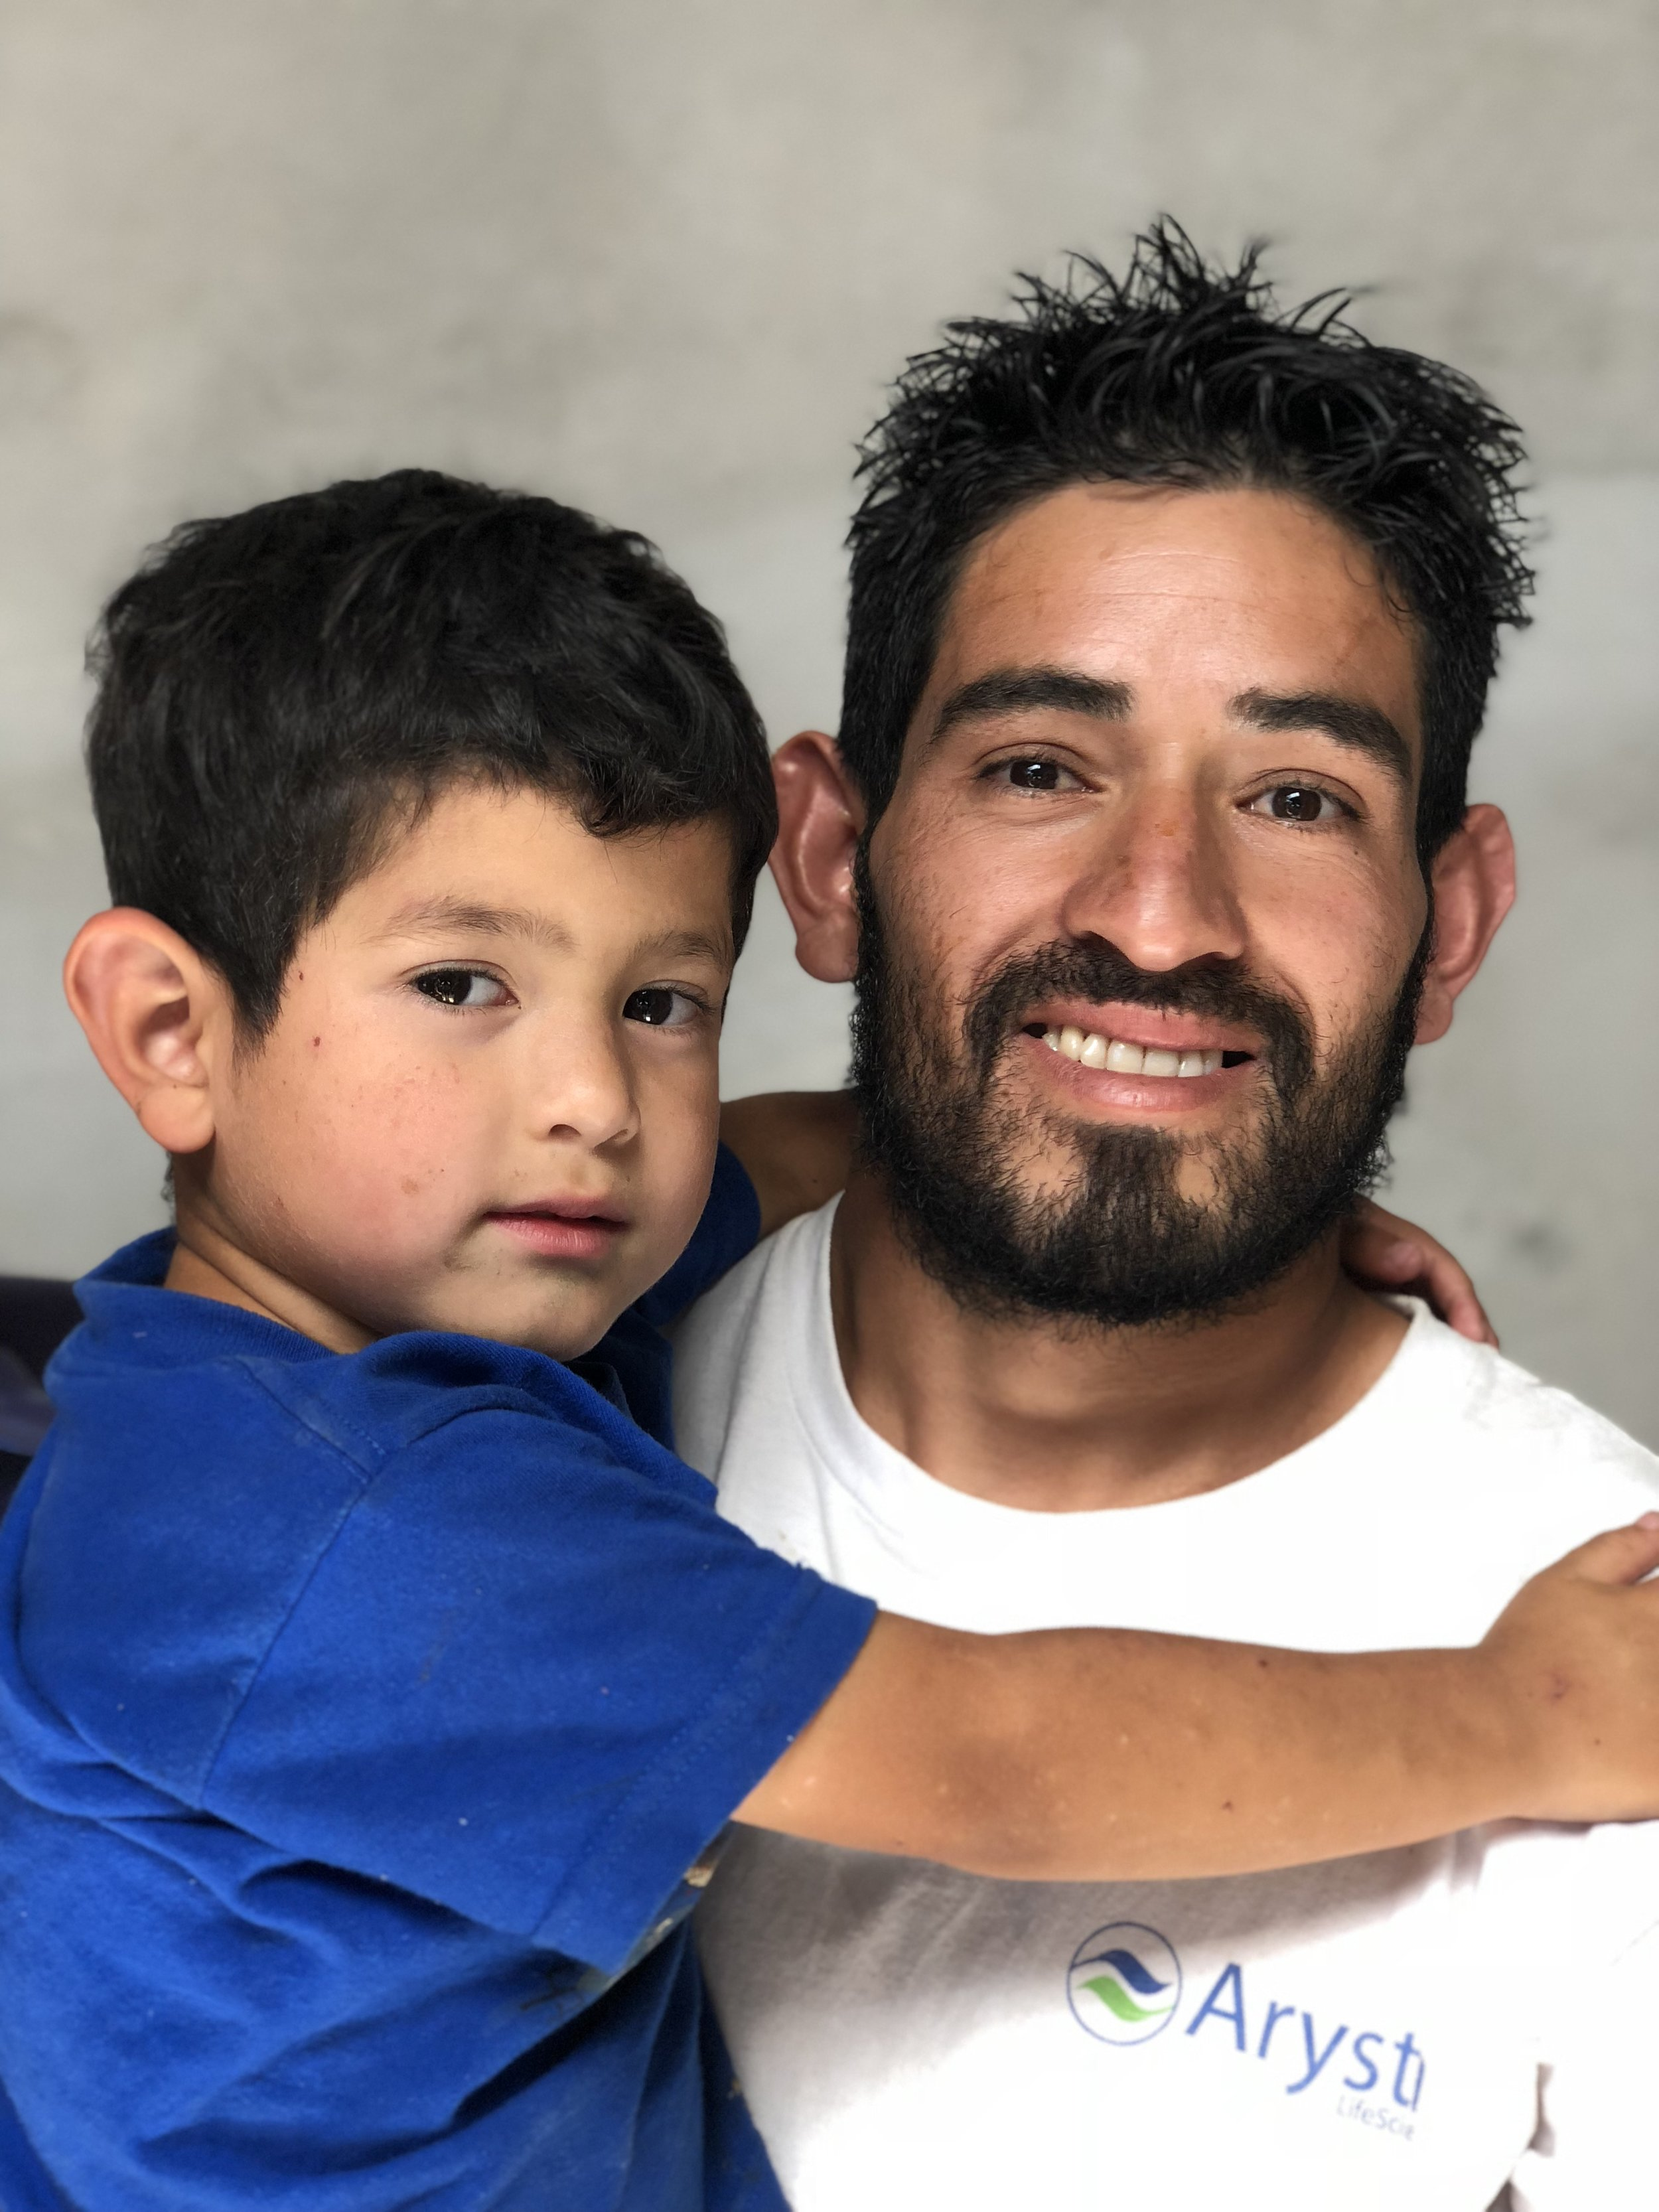 Dolmin Moreno with his son, Dolmin Isak